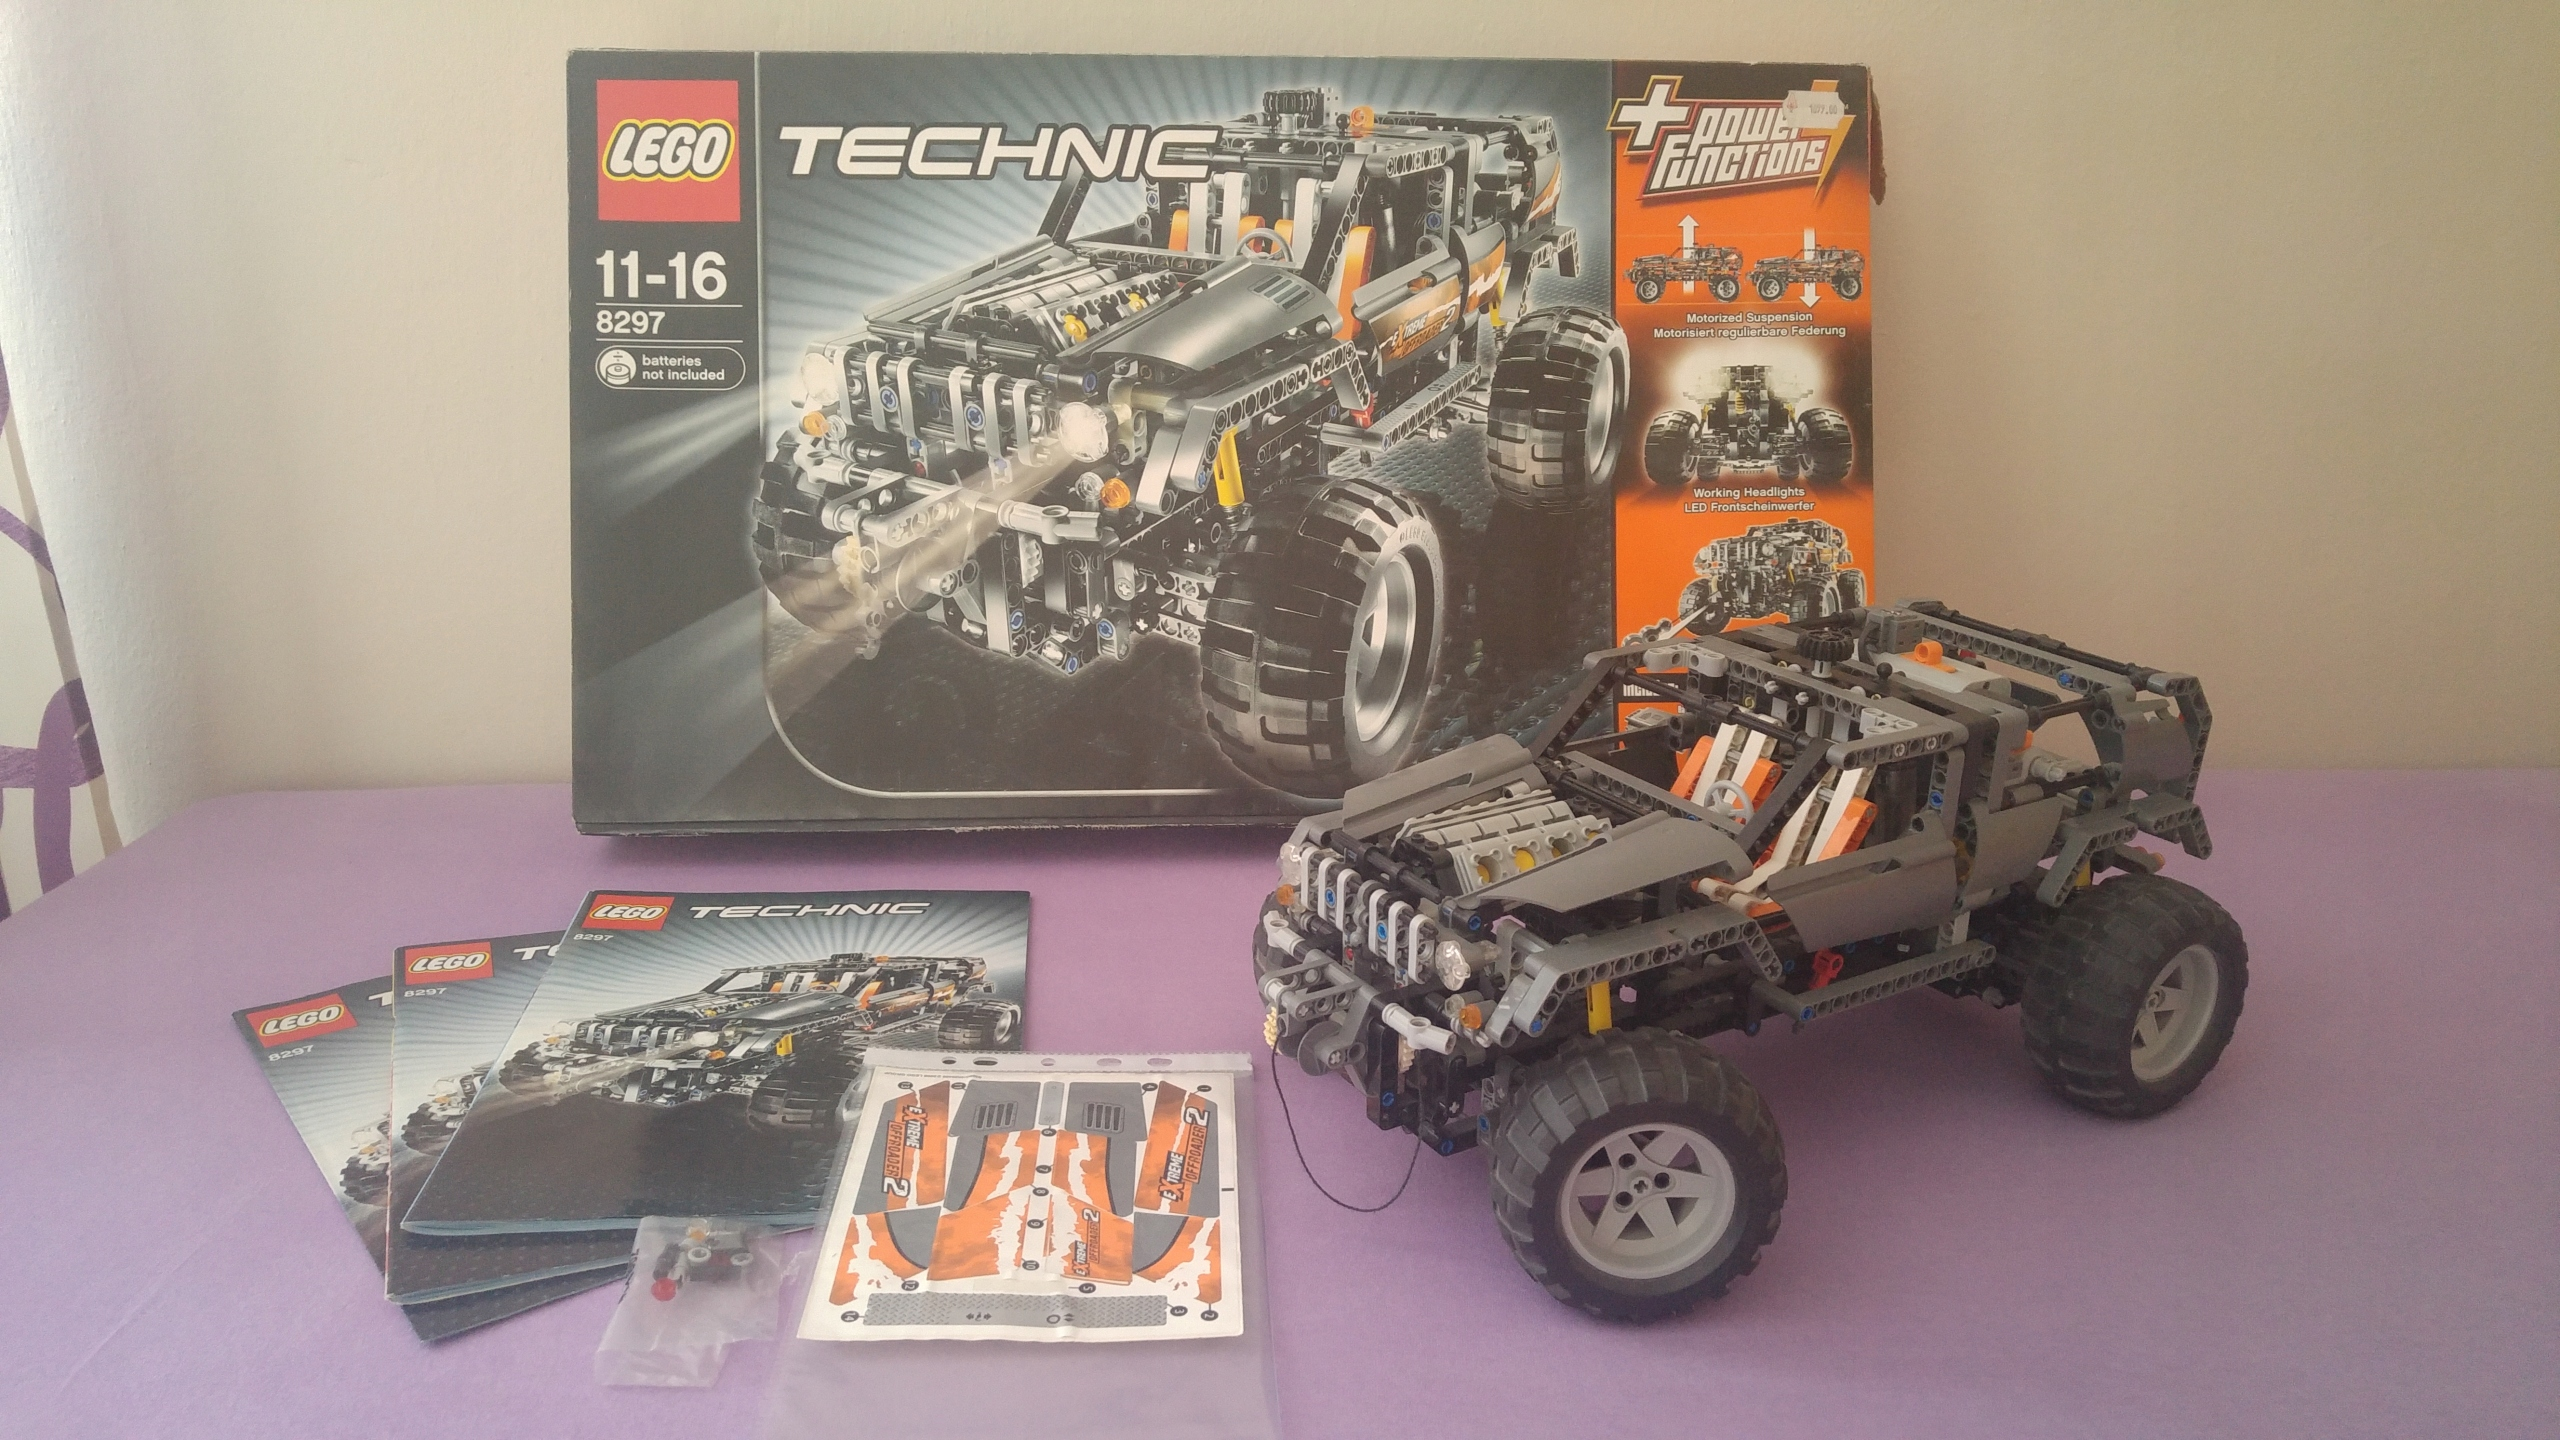 Lego Technic 8297 Off Roader Power Functions 7704552688